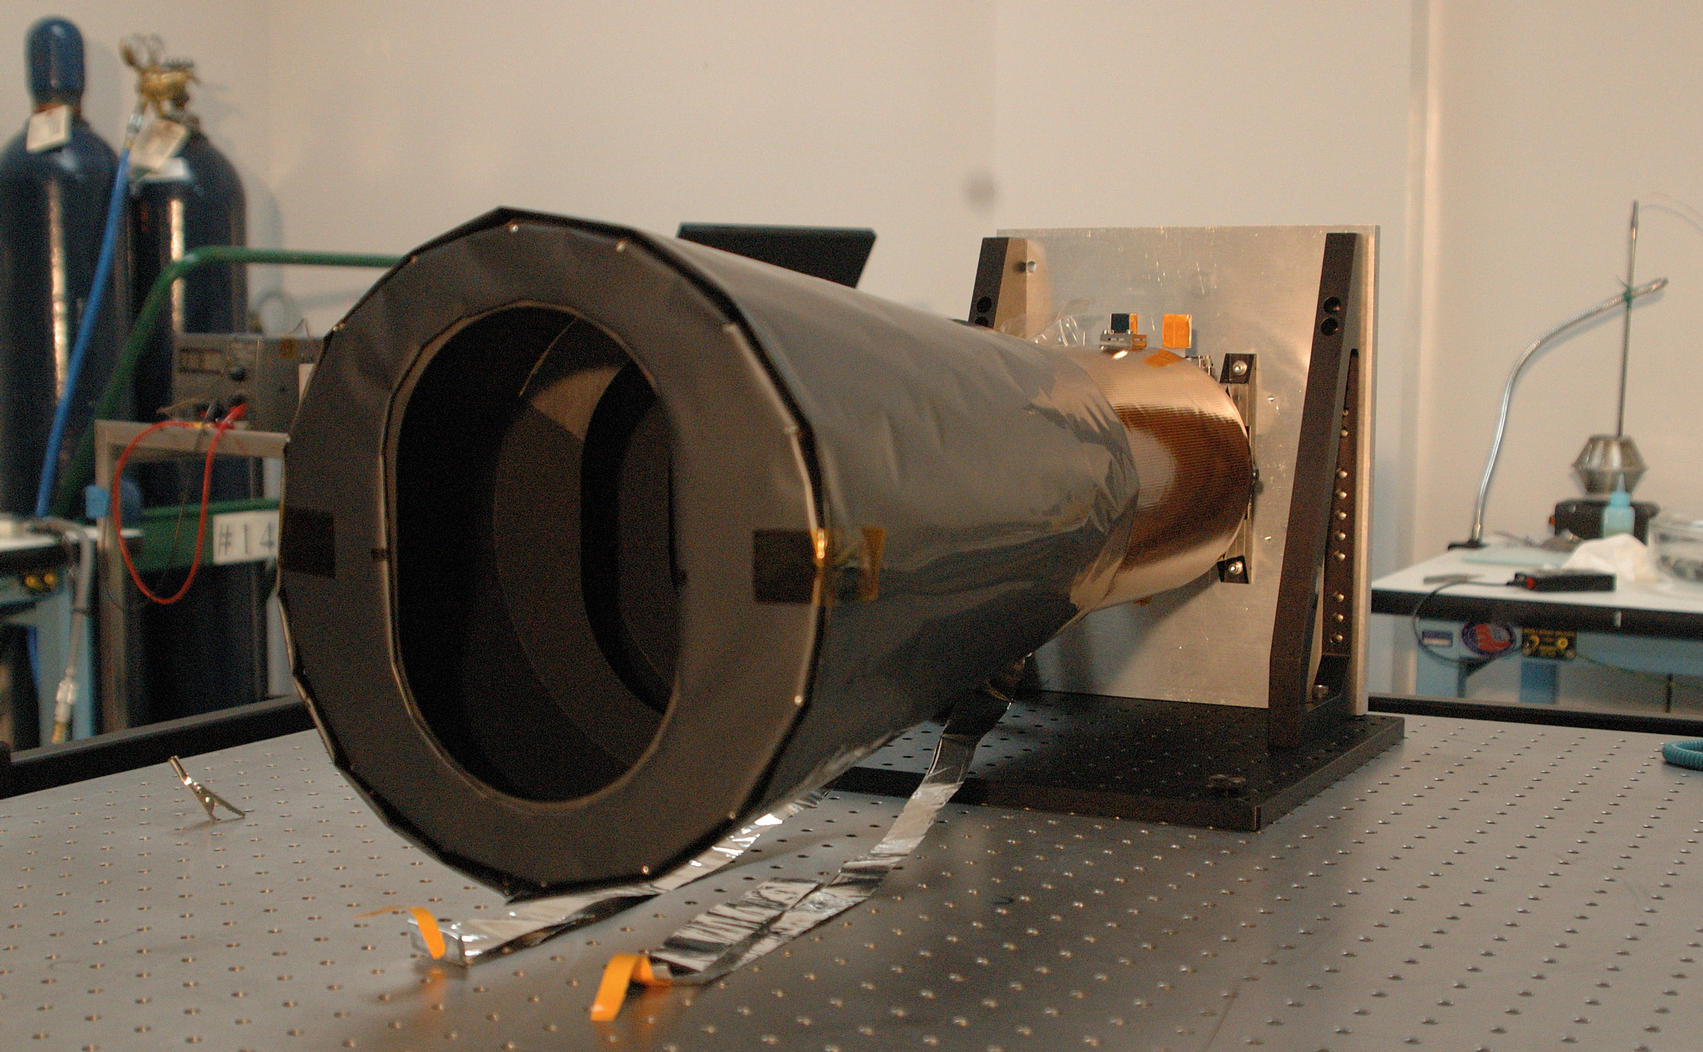 The MRO Context Camera, CTX, at Malin Space Science Systems in 2004, before it was delivered and mounted on the spacecraft.